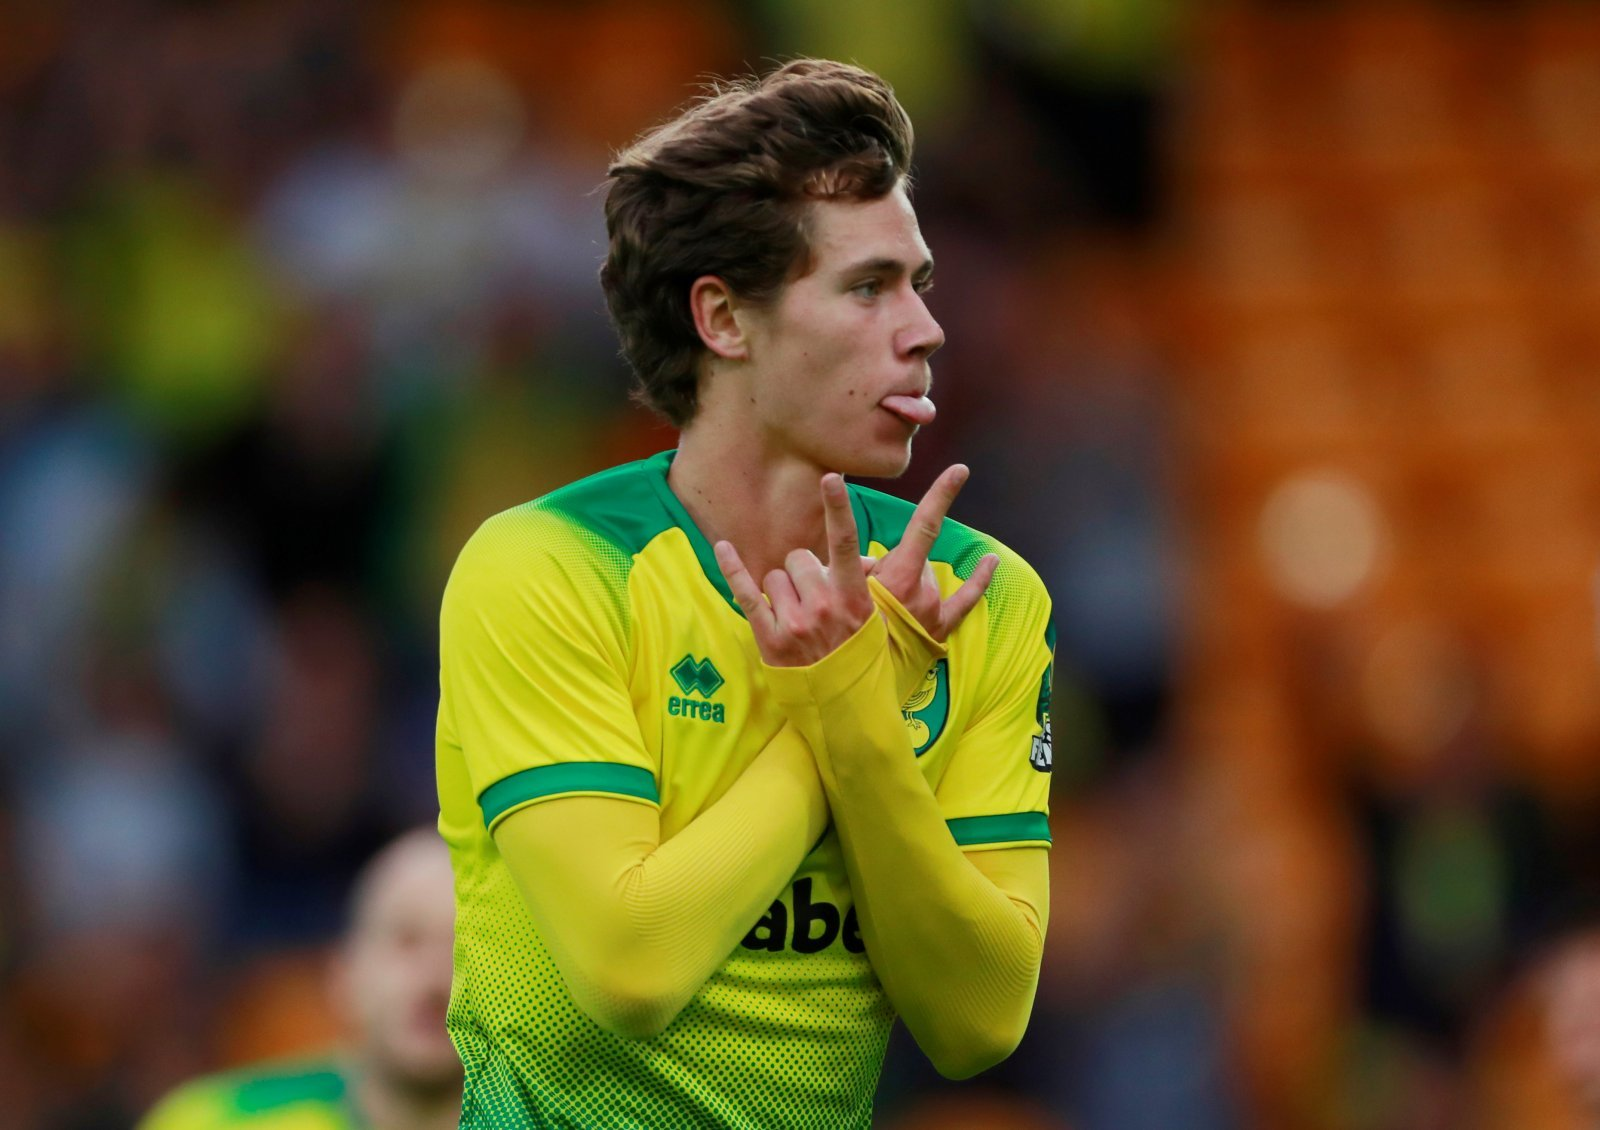 Norwich City: Fans give Todd Cantwell's goal their approval in September goal of the month debate